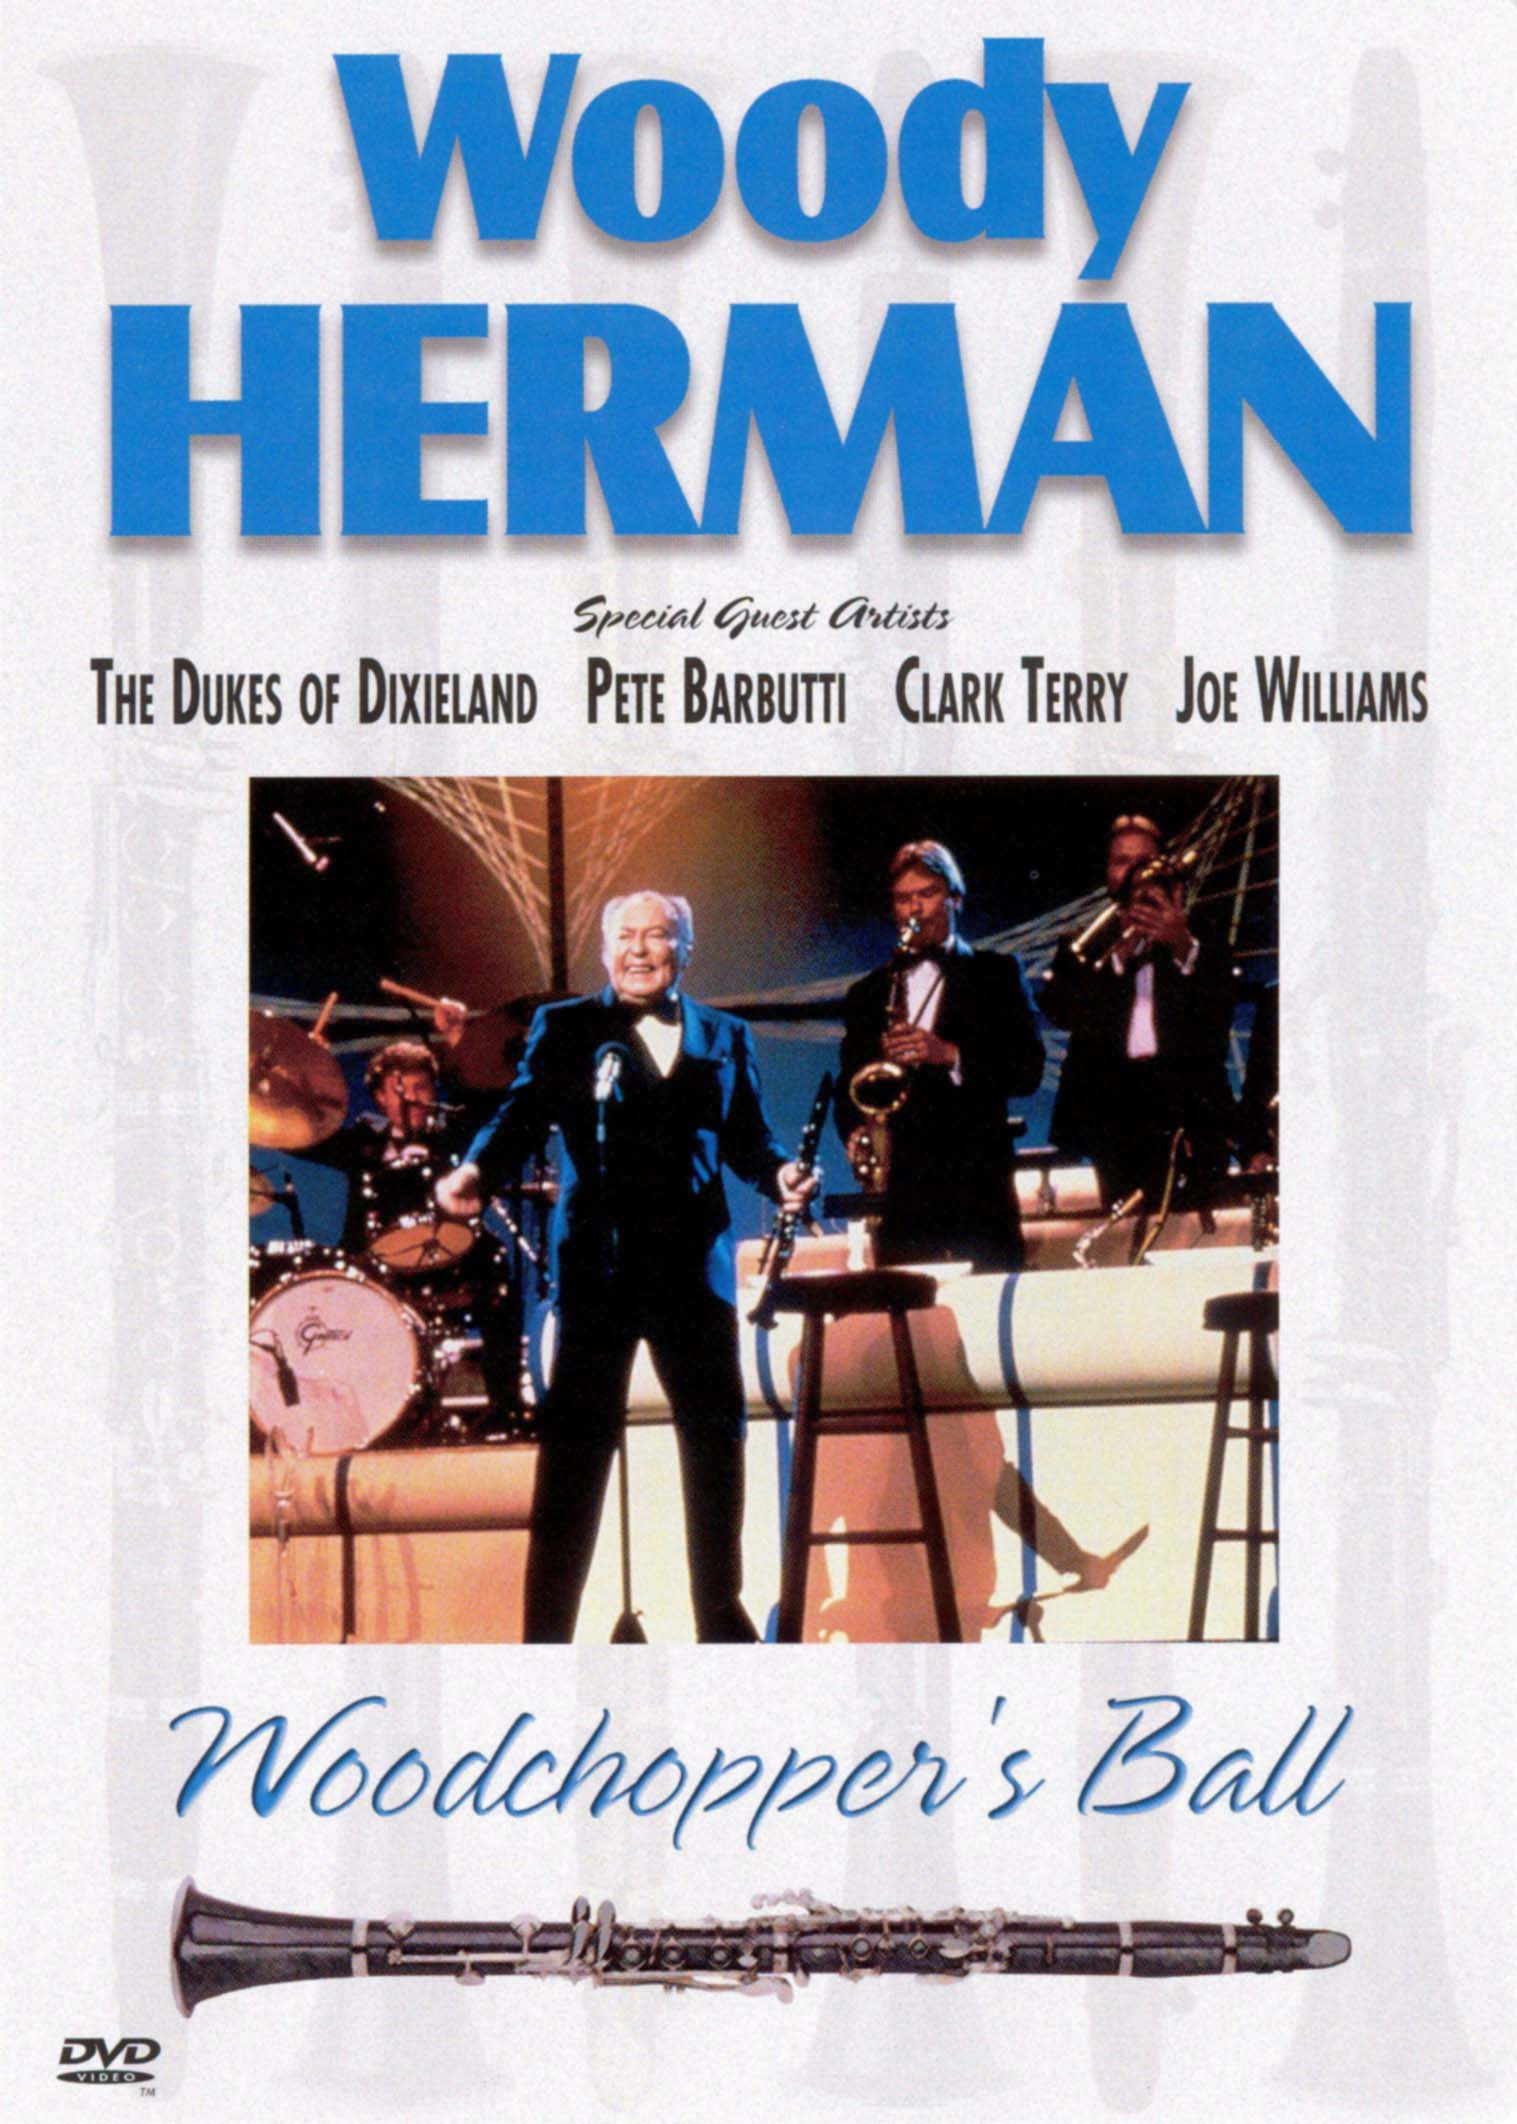 Woody Herman: Woodchopper's Ball